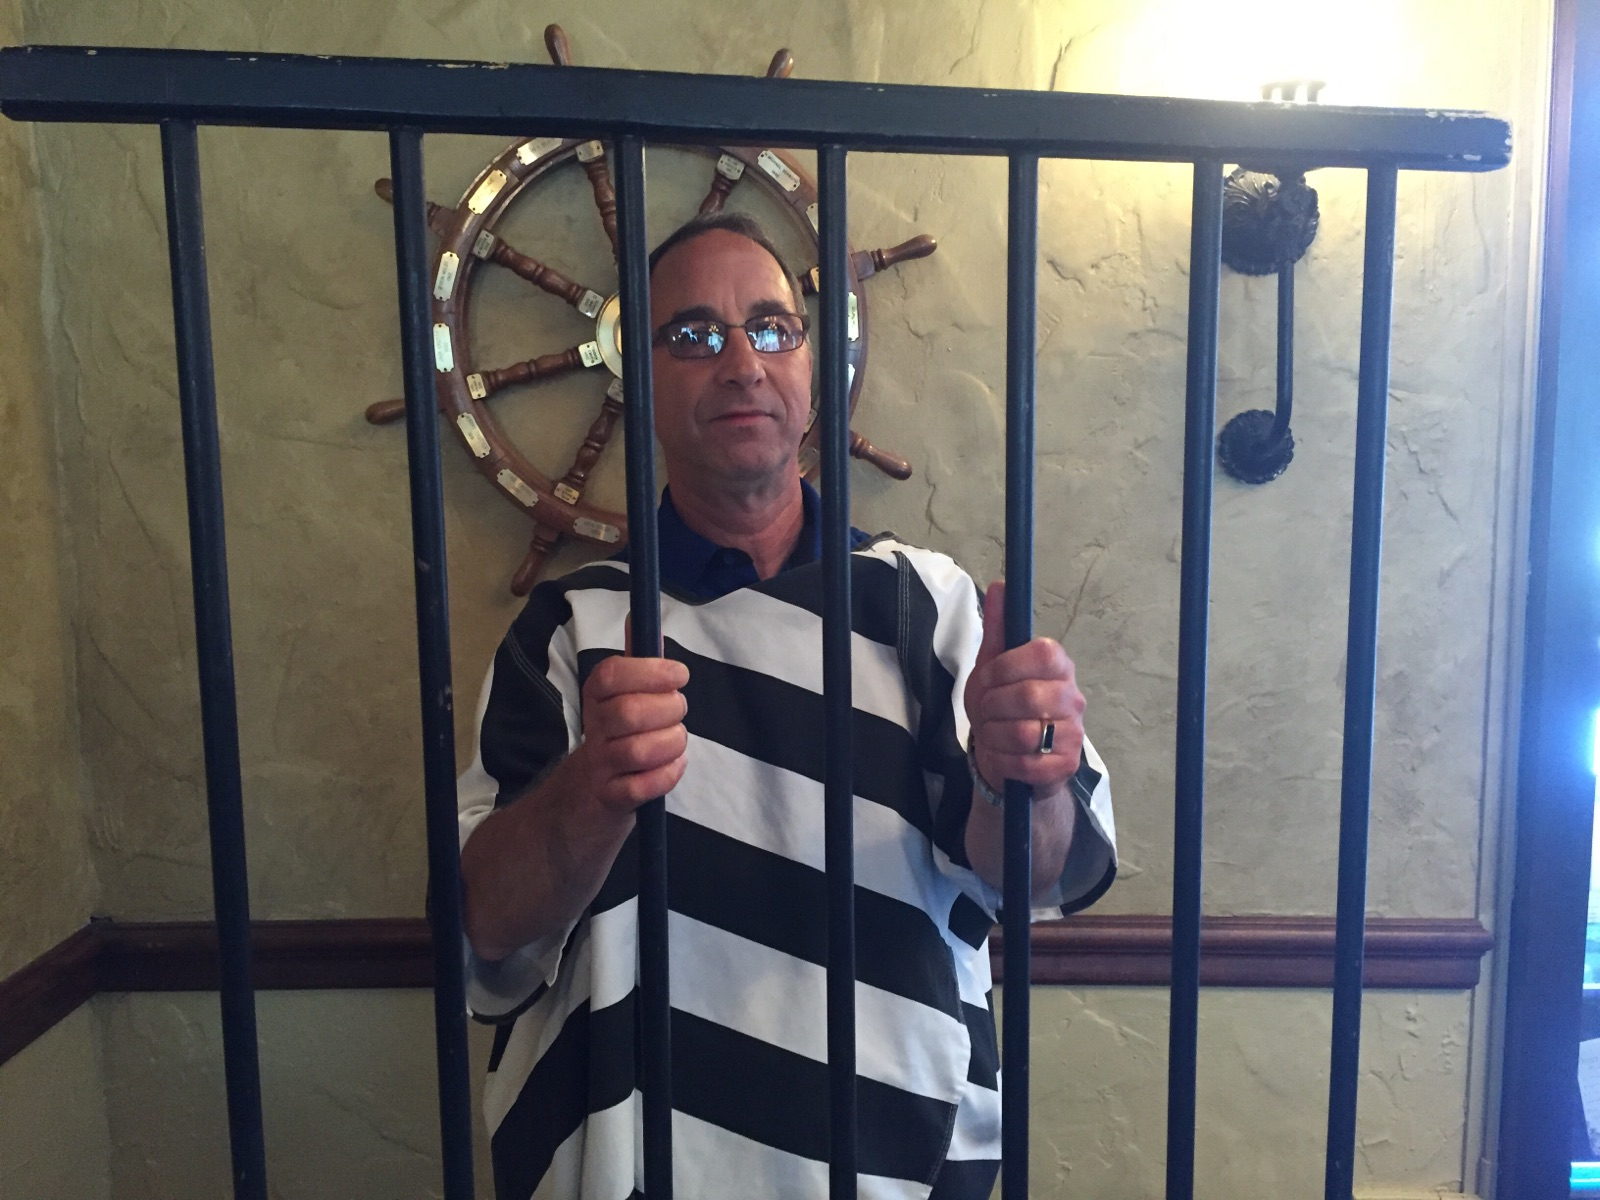 Pepco's Director of Marketing, John Paratore,  participates in Muscular Dystrophy Association (MDA) Lock-Up to help raise funds to find treatments for neuromuscular diseases.